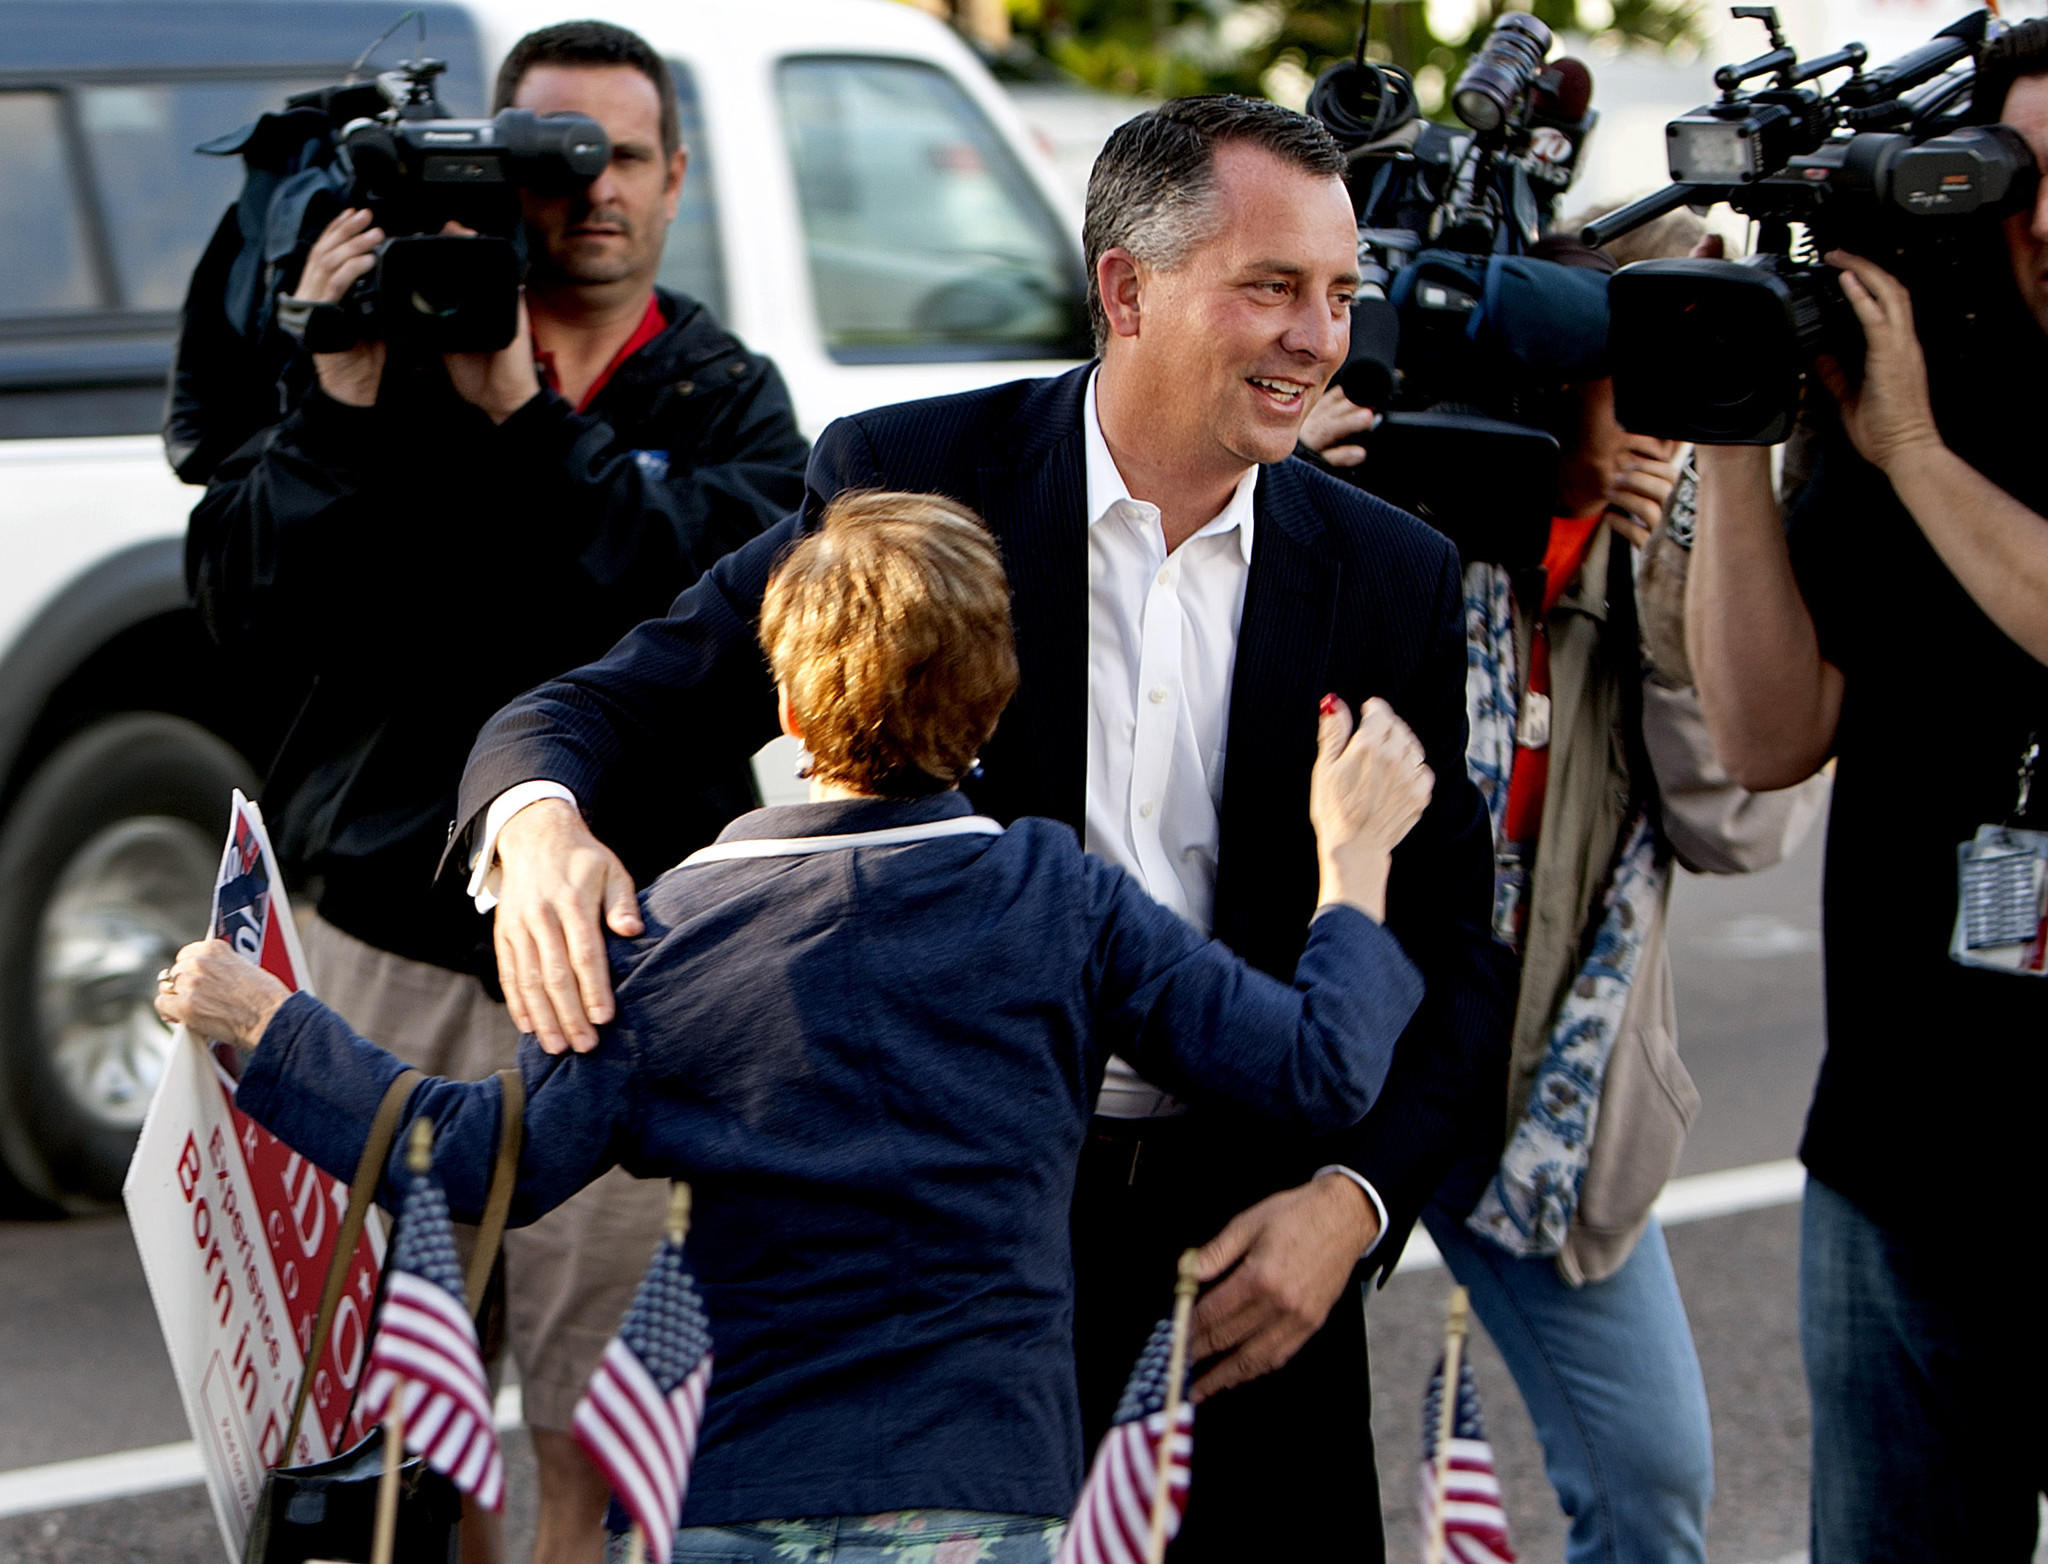 Candidate David Jolly greets supporters as he arrives at the Indian Shores Town Hall to place his vote in the special election for Florida 13th Congressional District.